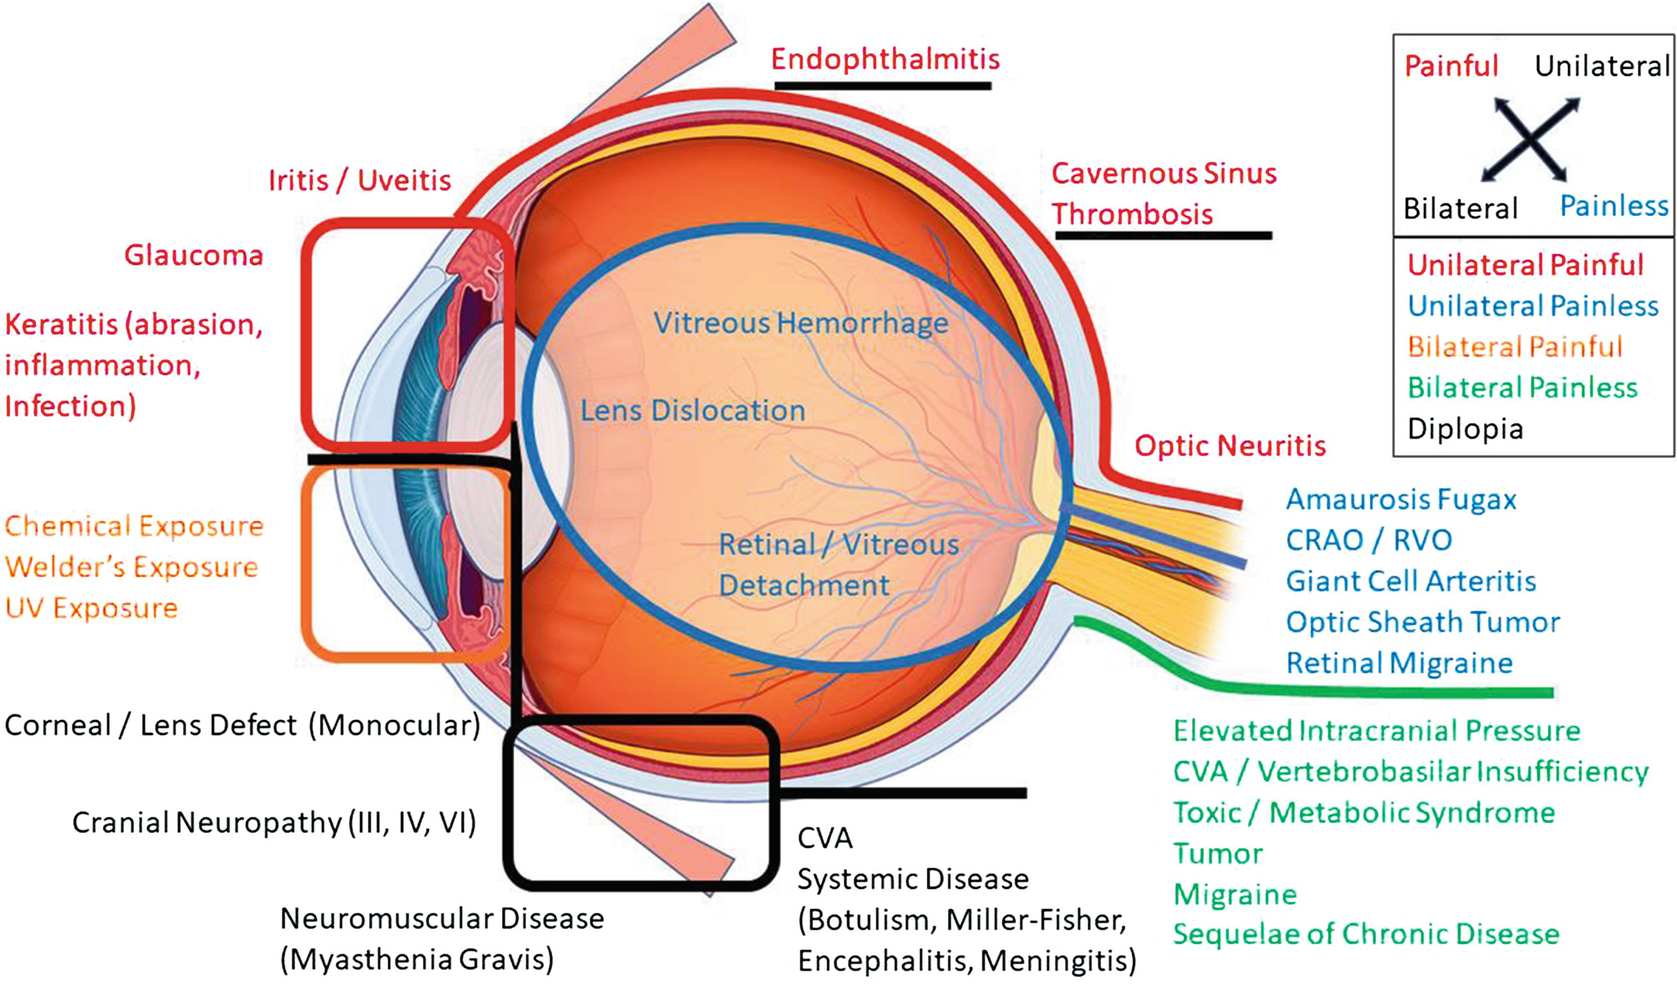 Damage Control Ophthalmology: Emergency Department